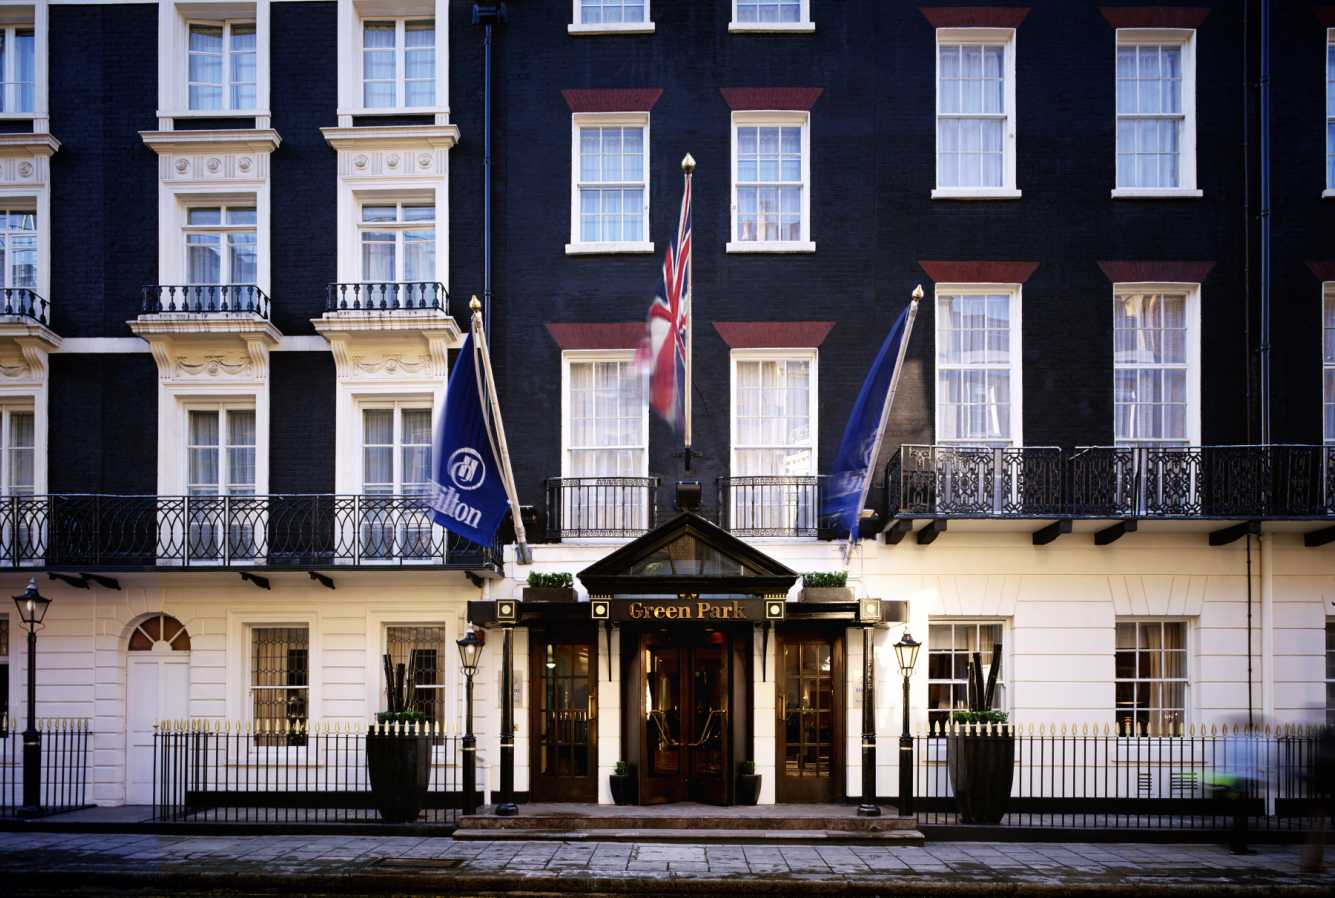 Hotels Near And In Mayfair London